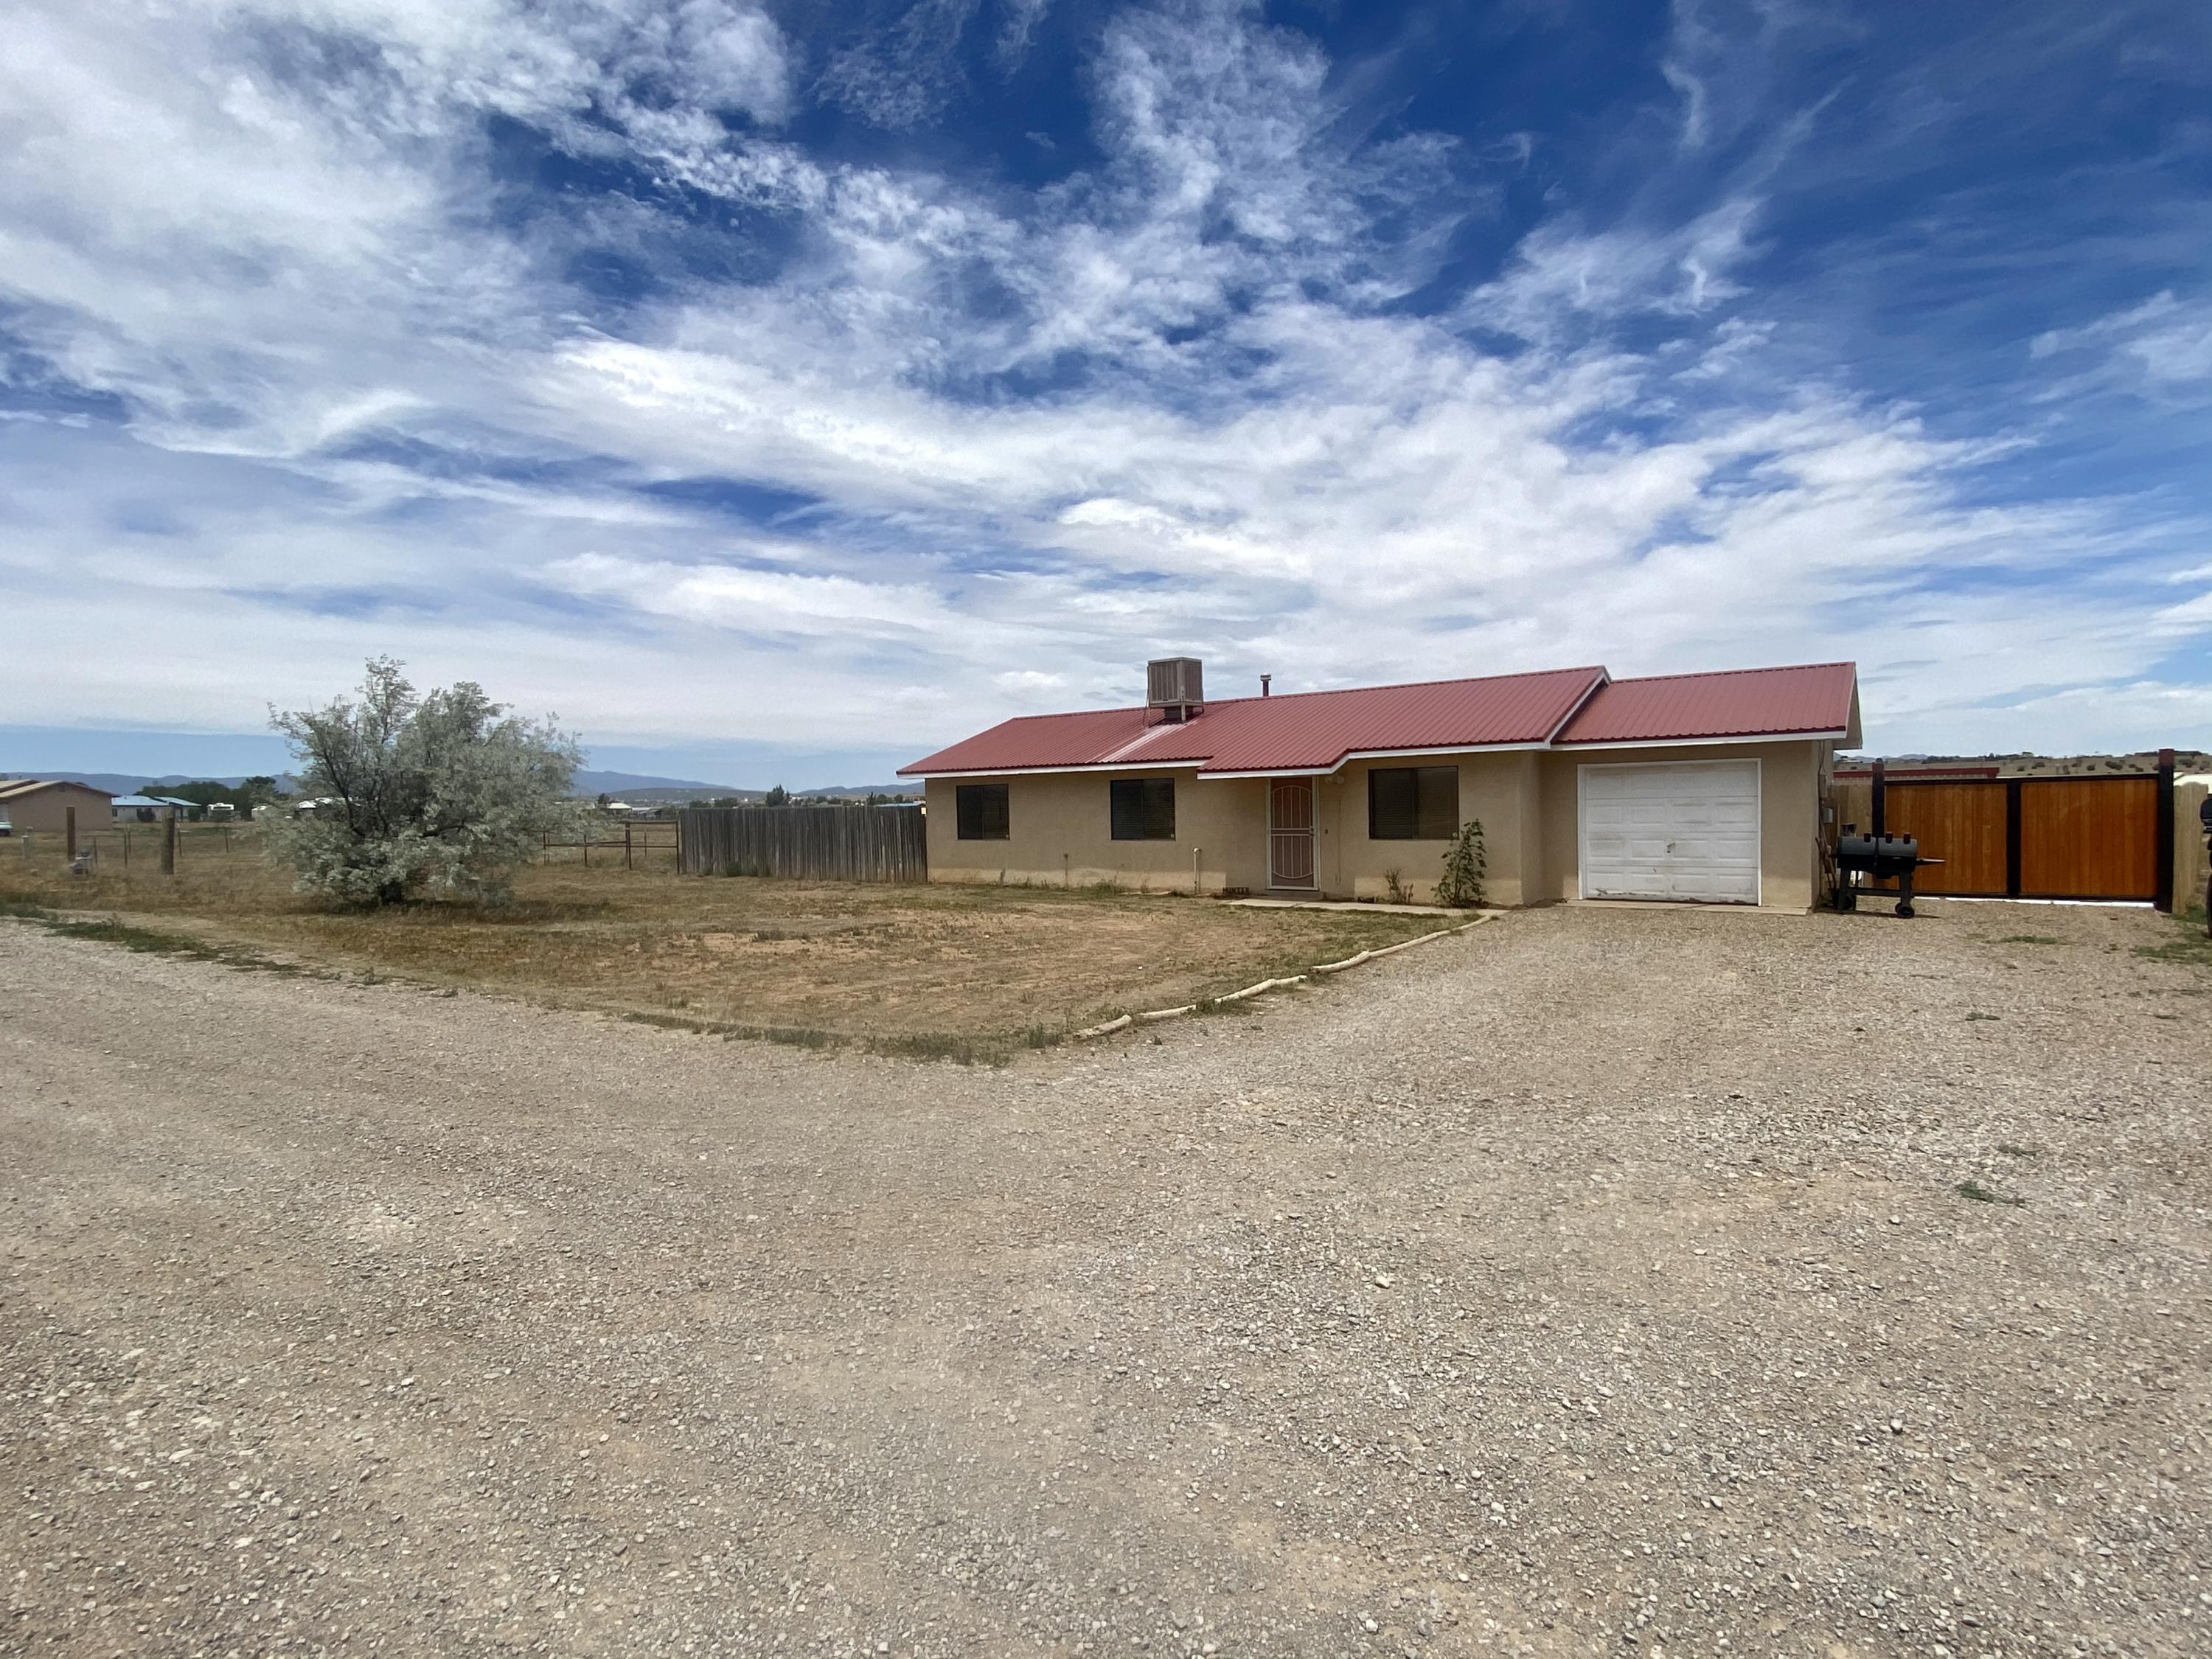 First Time Homebuyers-This one is for You!  Cozy 3 bedroom home with wood laminate flooring throughout, ceramic tile in kitchen, fresh paint, metal roof, pipe fencing, small barn for animals and a storage building. Schedule to see today...you won't be disappointed here!!